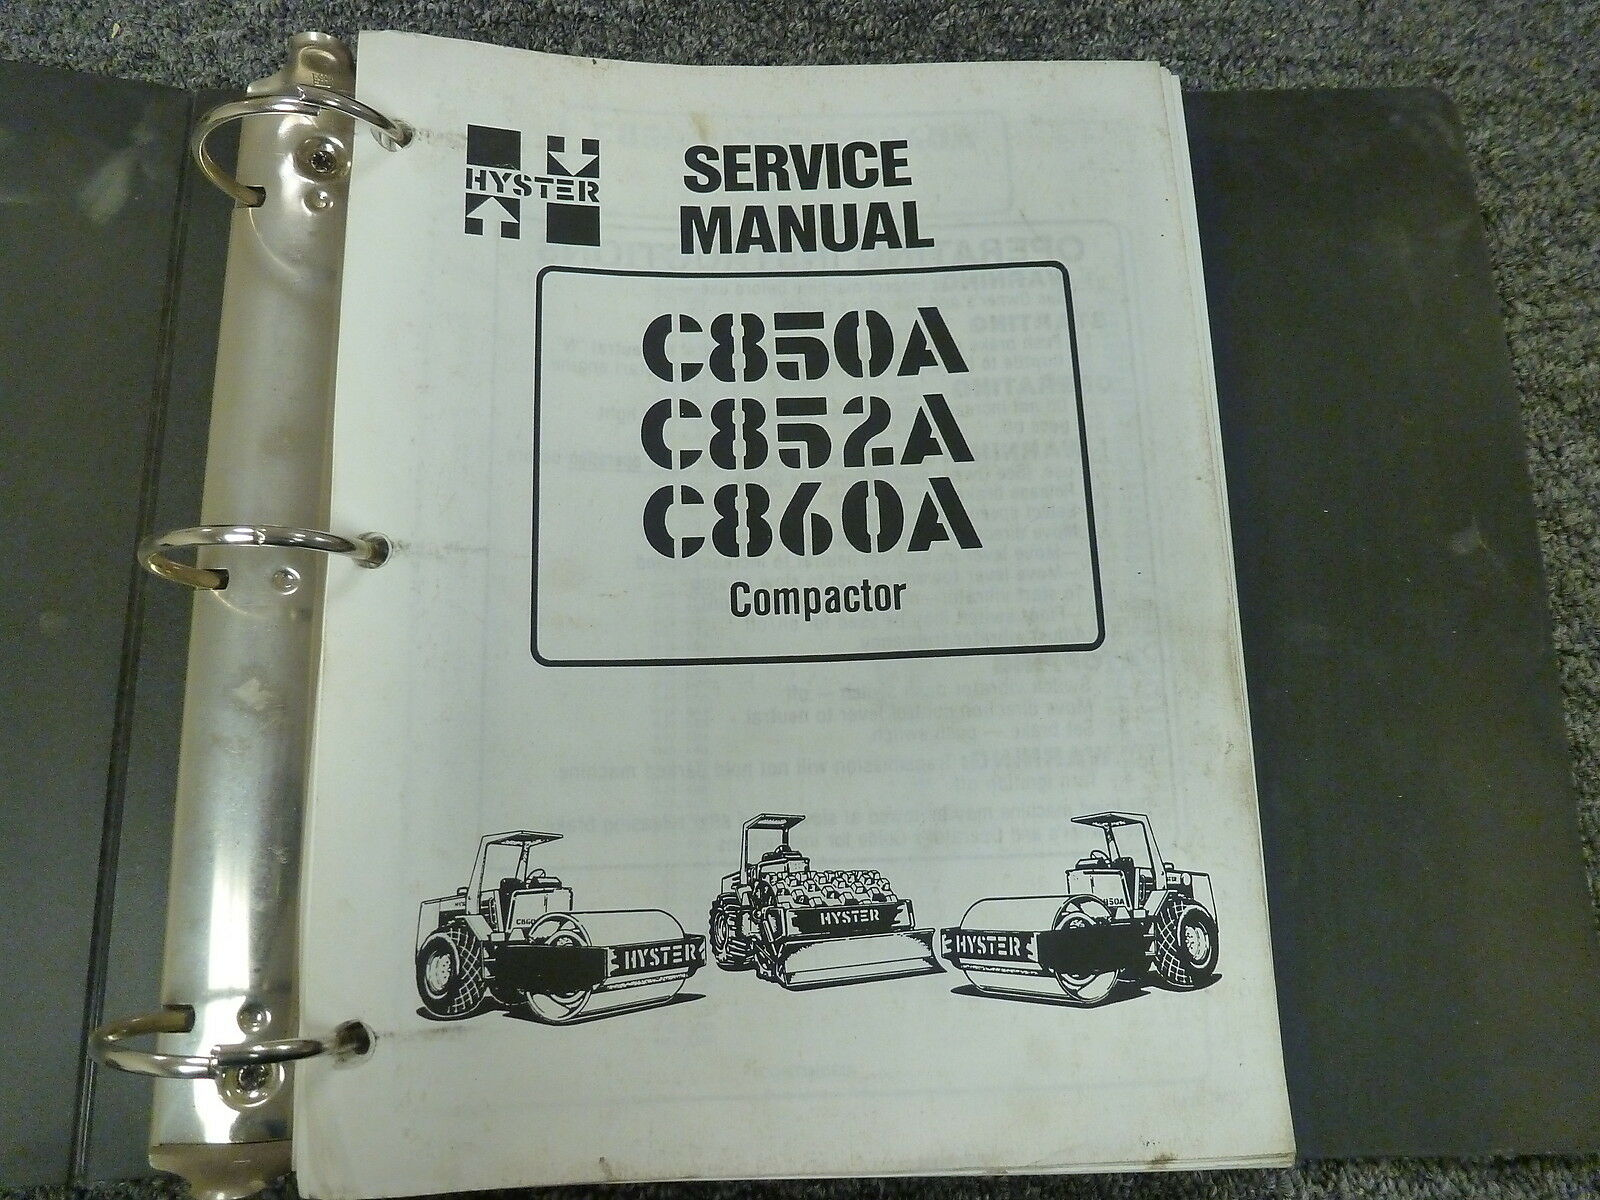 Hyster C850A C852A C860A Roller Compactor Shop Service Repair Manual Book 1  of 1Only 1 available See More